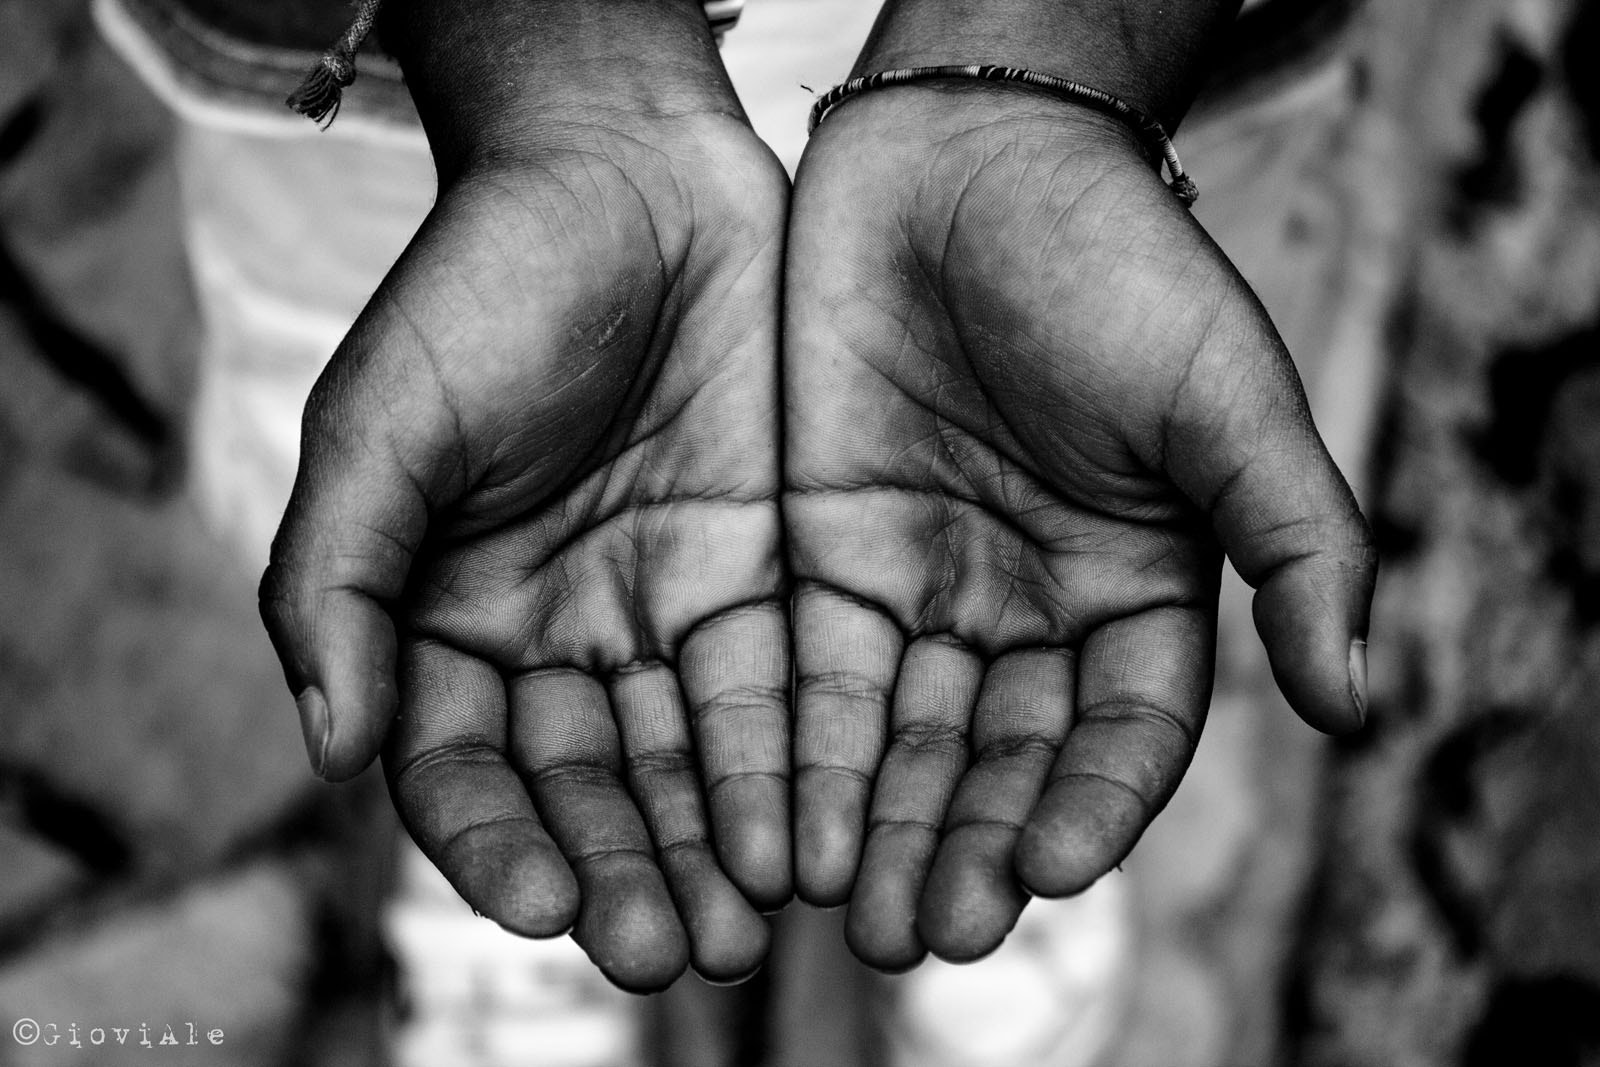 Photograph Talking hands by Giovi Ale on 500px